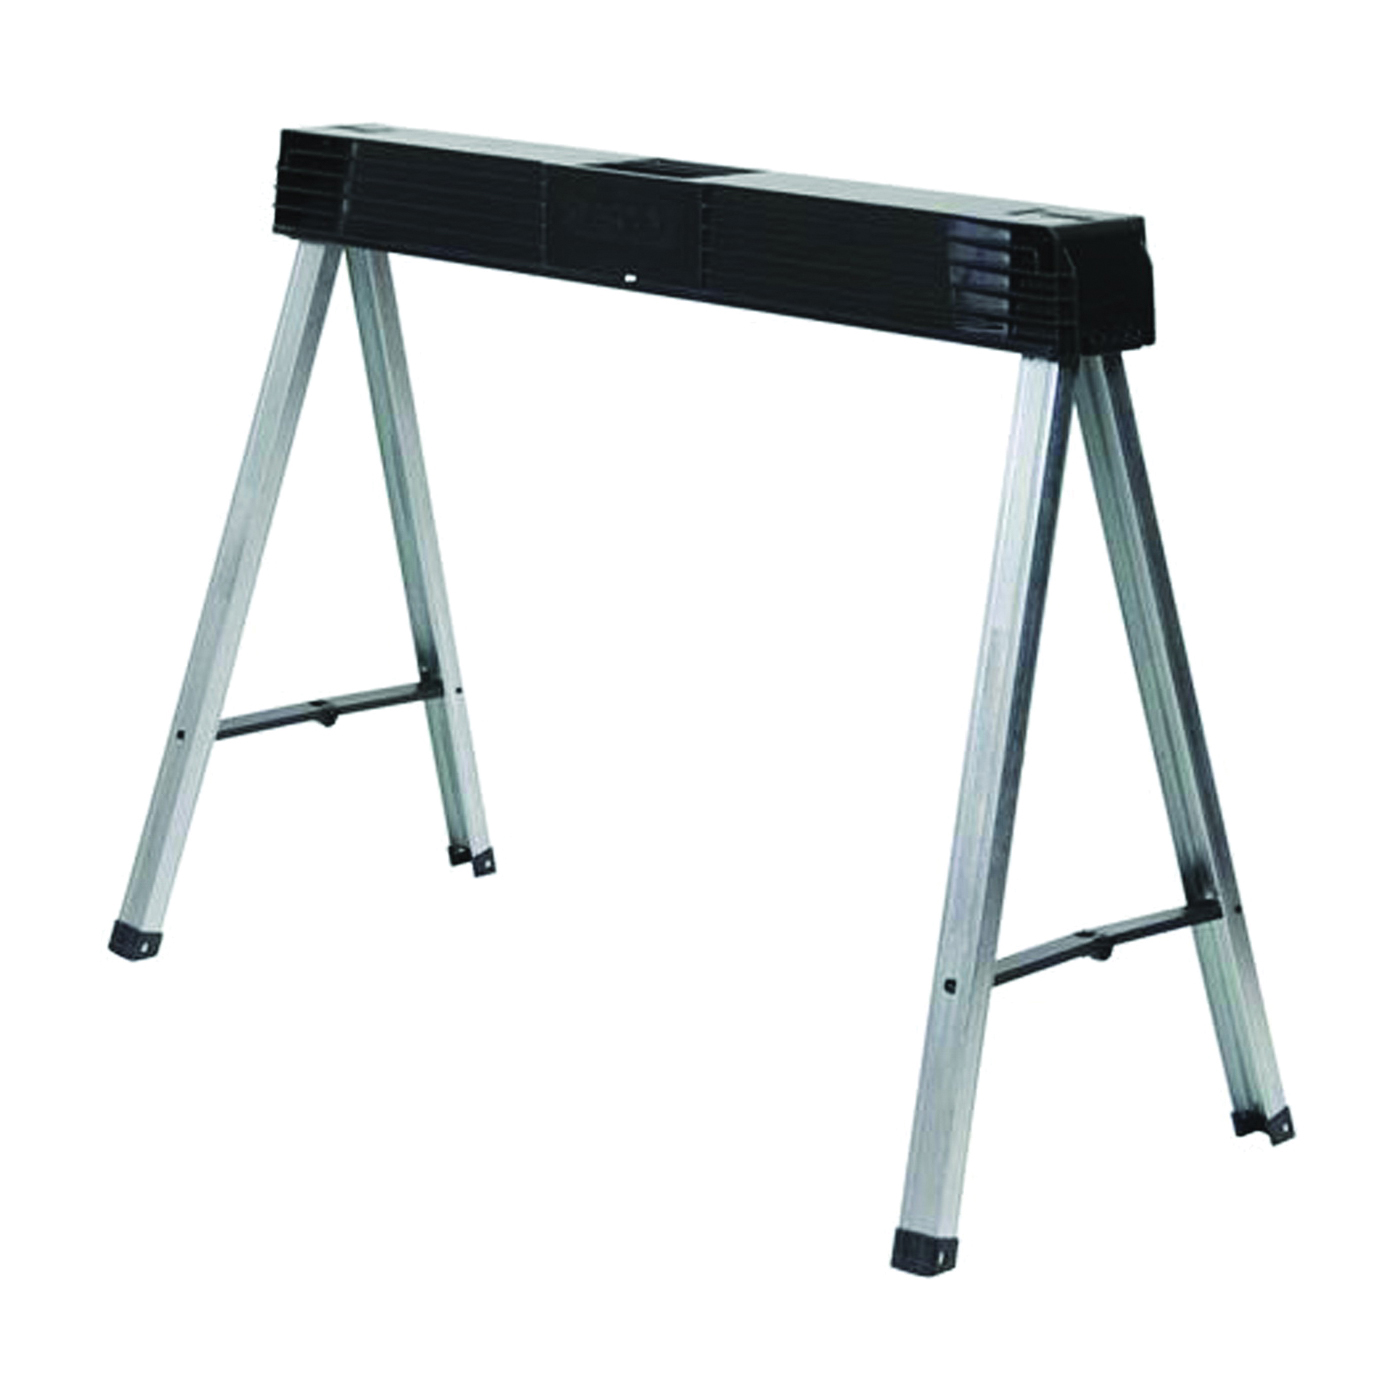 Picture of STANLEY FATMAX STST11151 Fold Up Sawhorse, 800 lb, 4 in W, 5 in H, 40 in D, Metal/Polypropylene, Gray